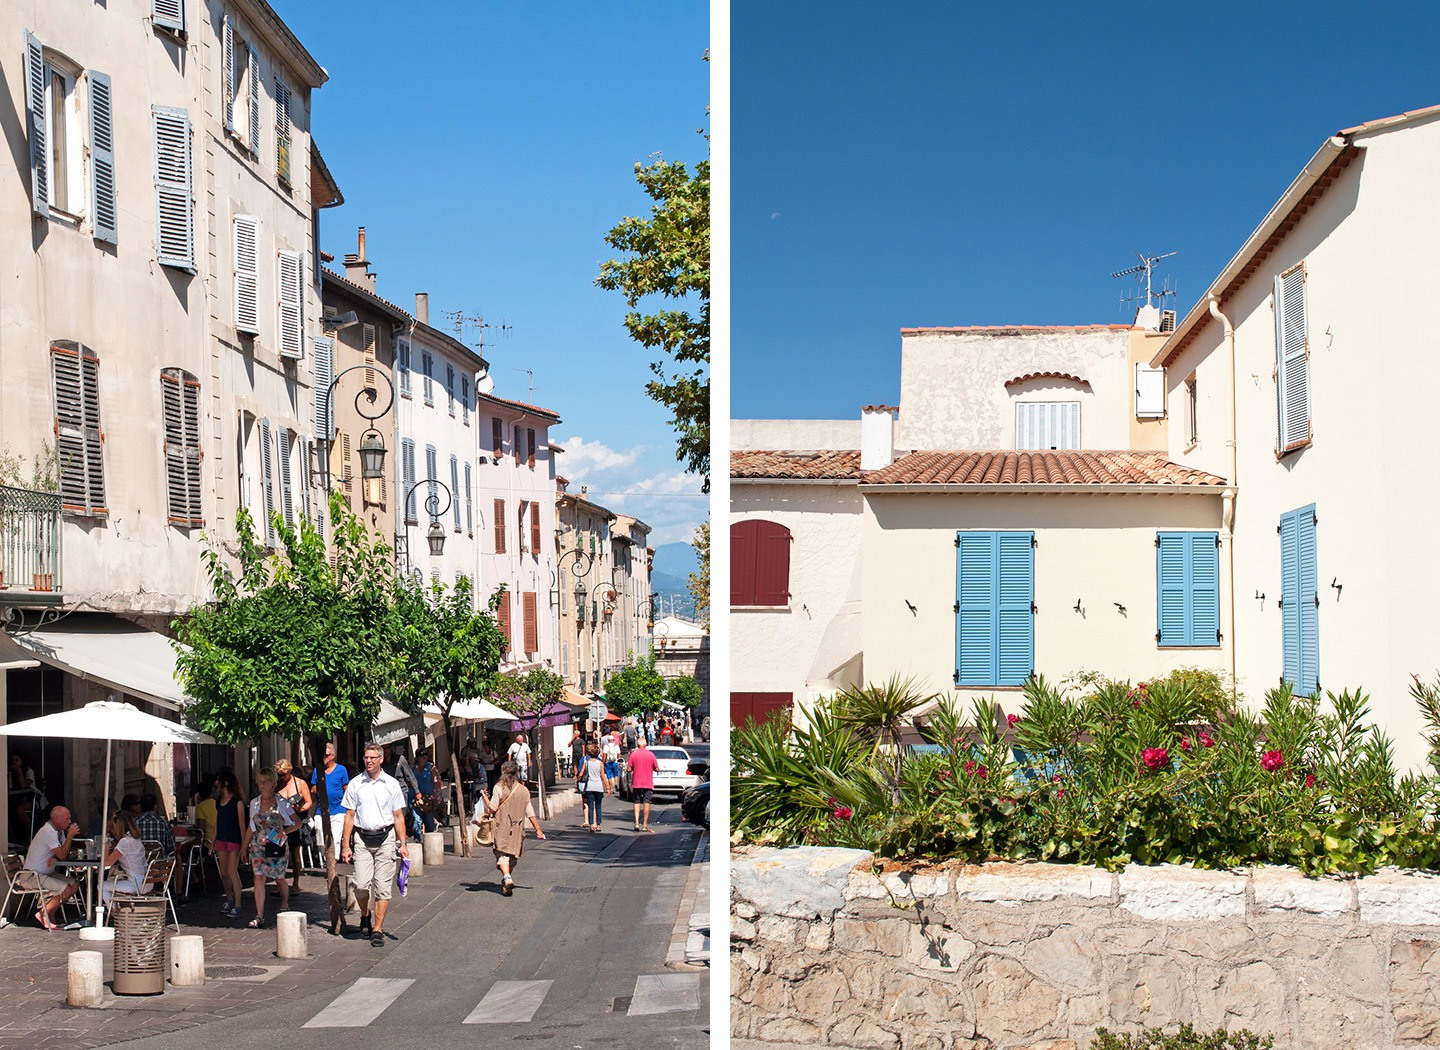 Vieil Antibes – Antibes old town in the South of France